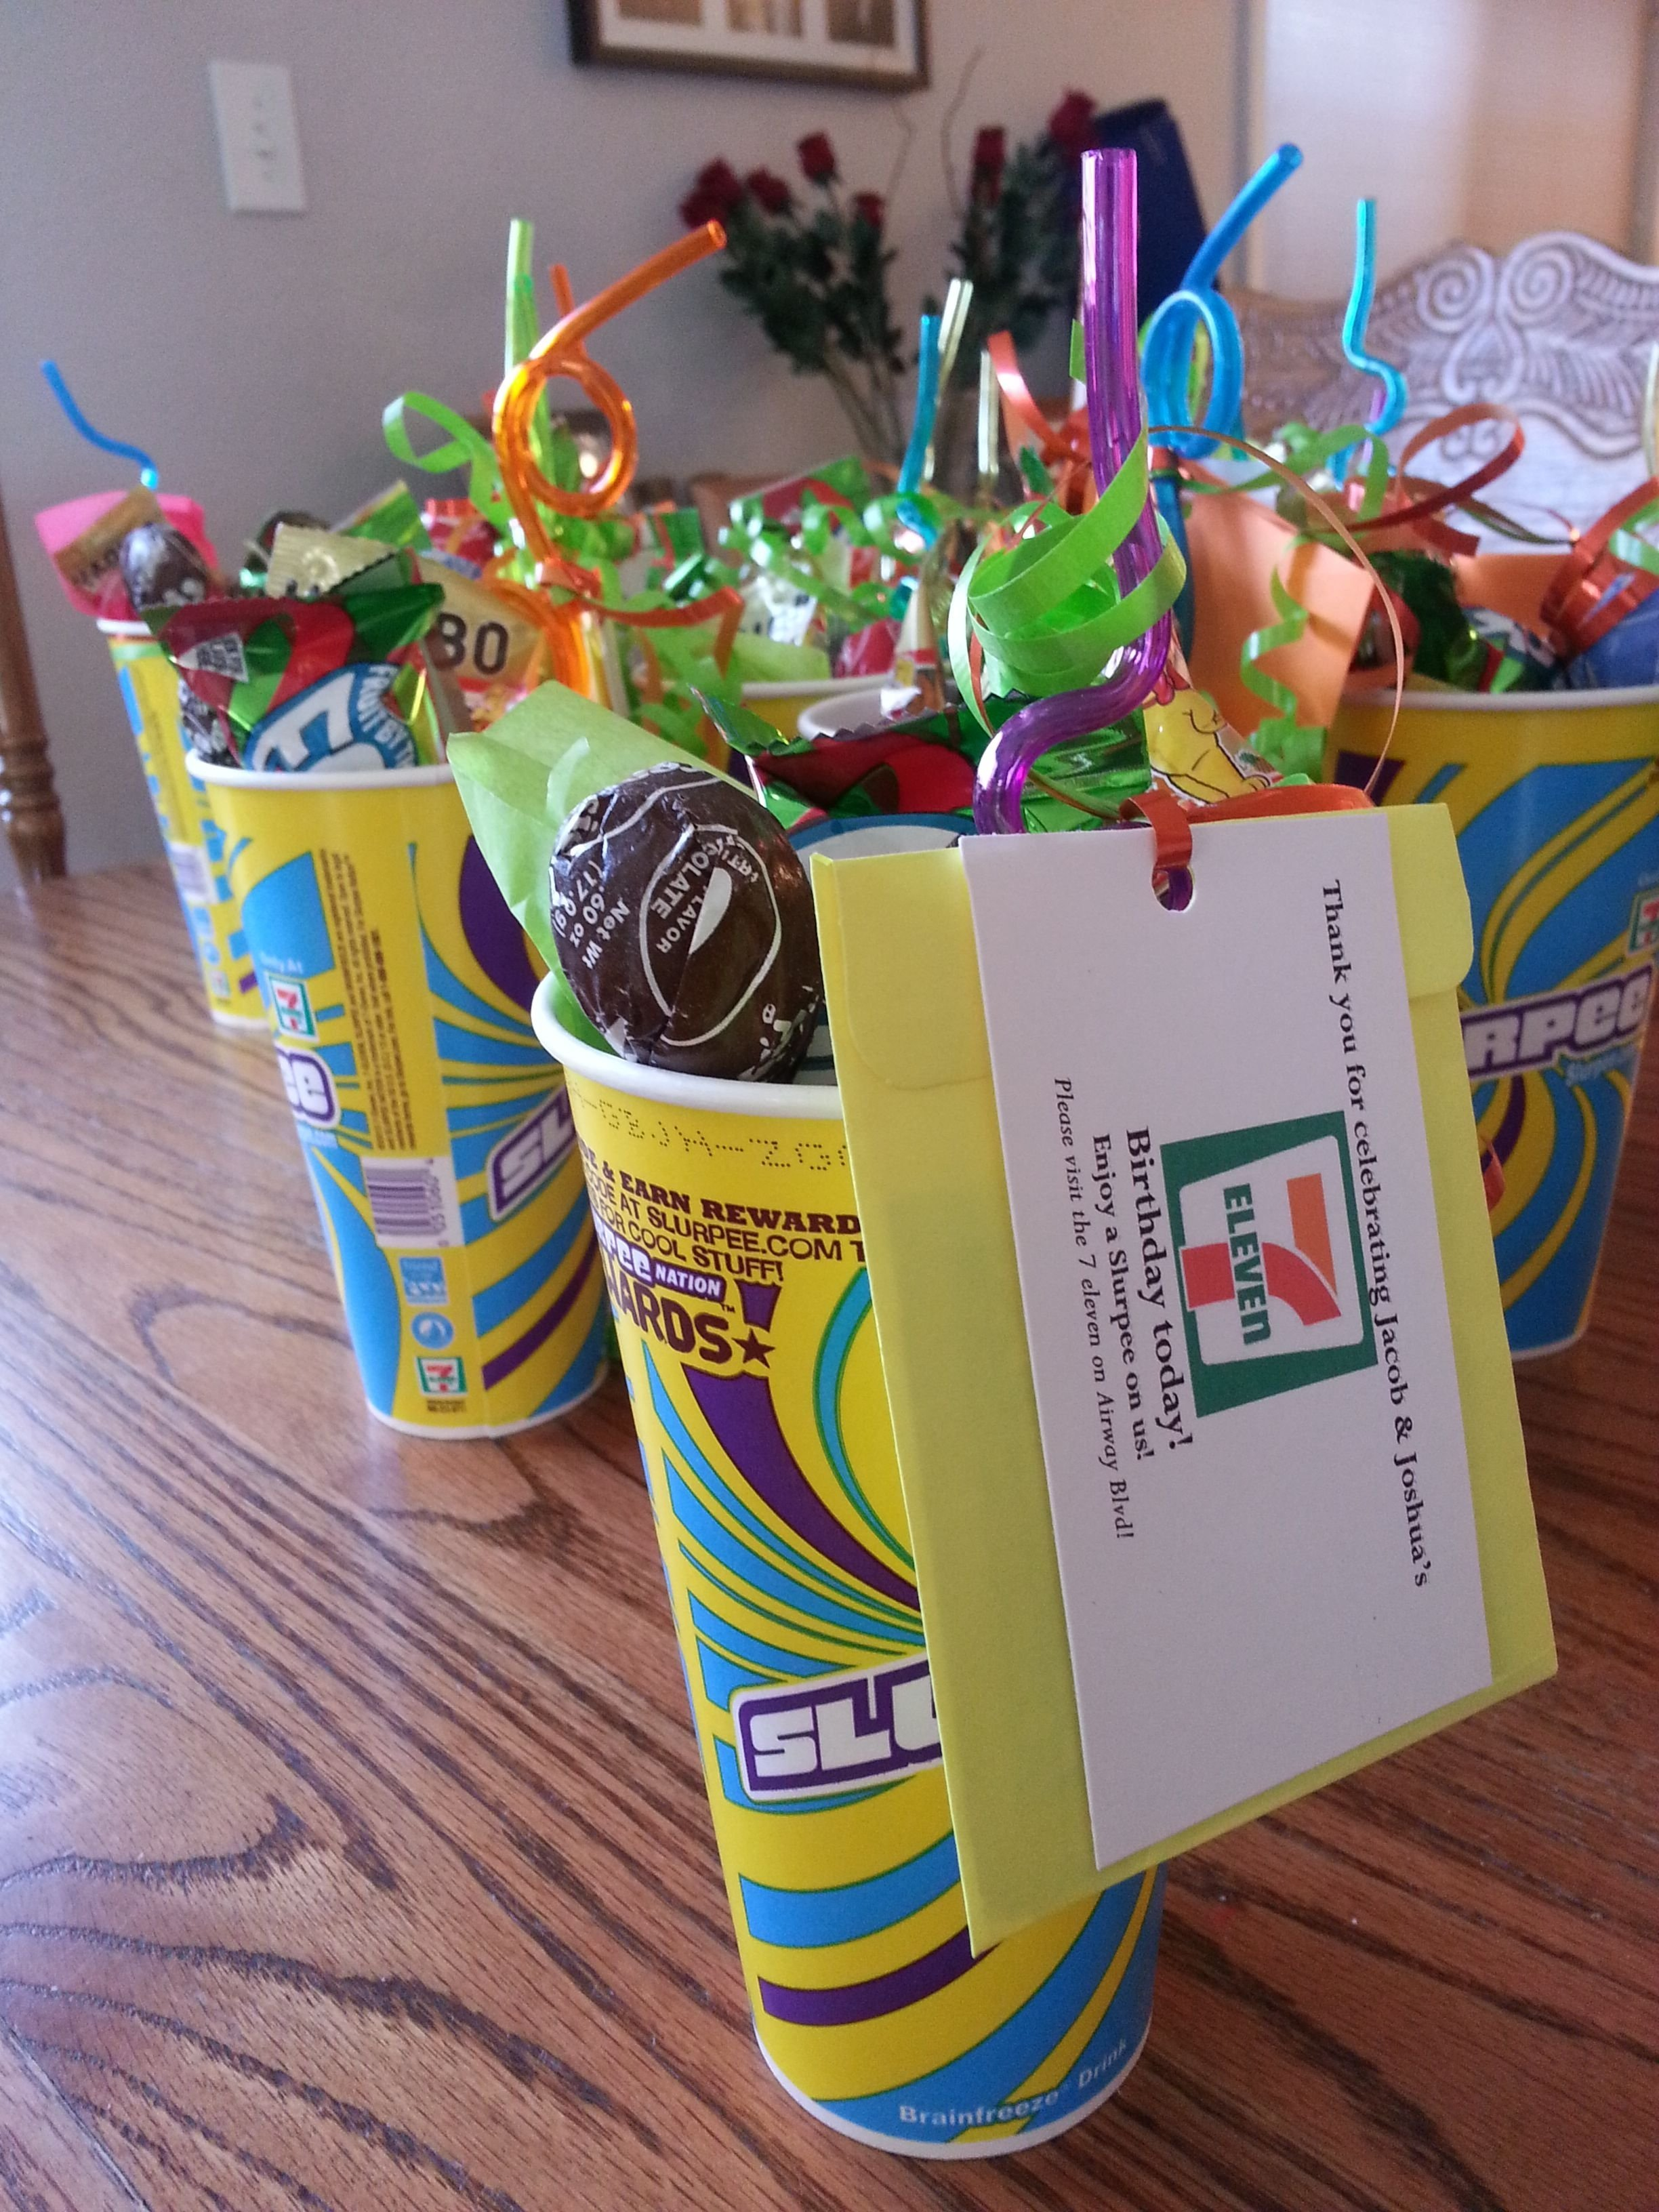 10 Lovely Ideas For 11 Year Old Birthday Party my boys turned 7 and 11 years old and their birthdays are very close 19 2020